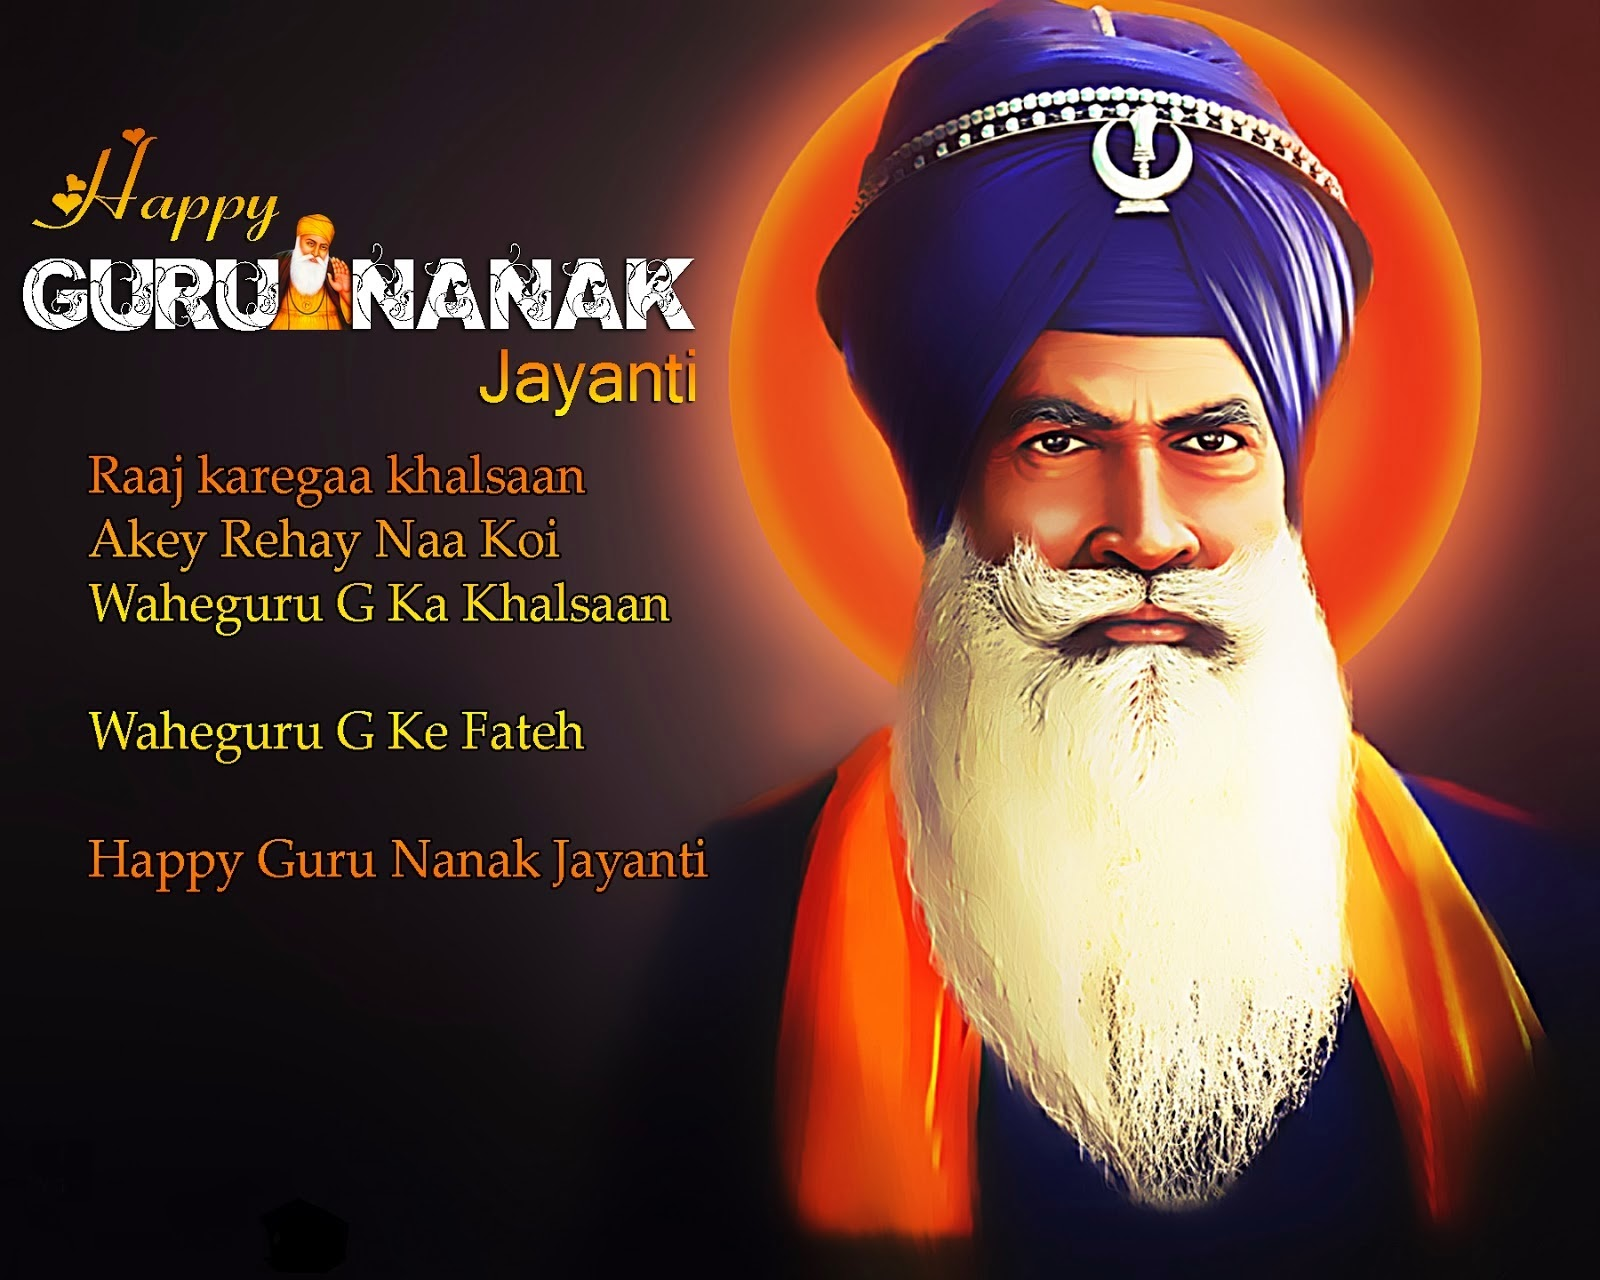 Guru Nanak jayanti Gurupurab Greetings Sms Wishes